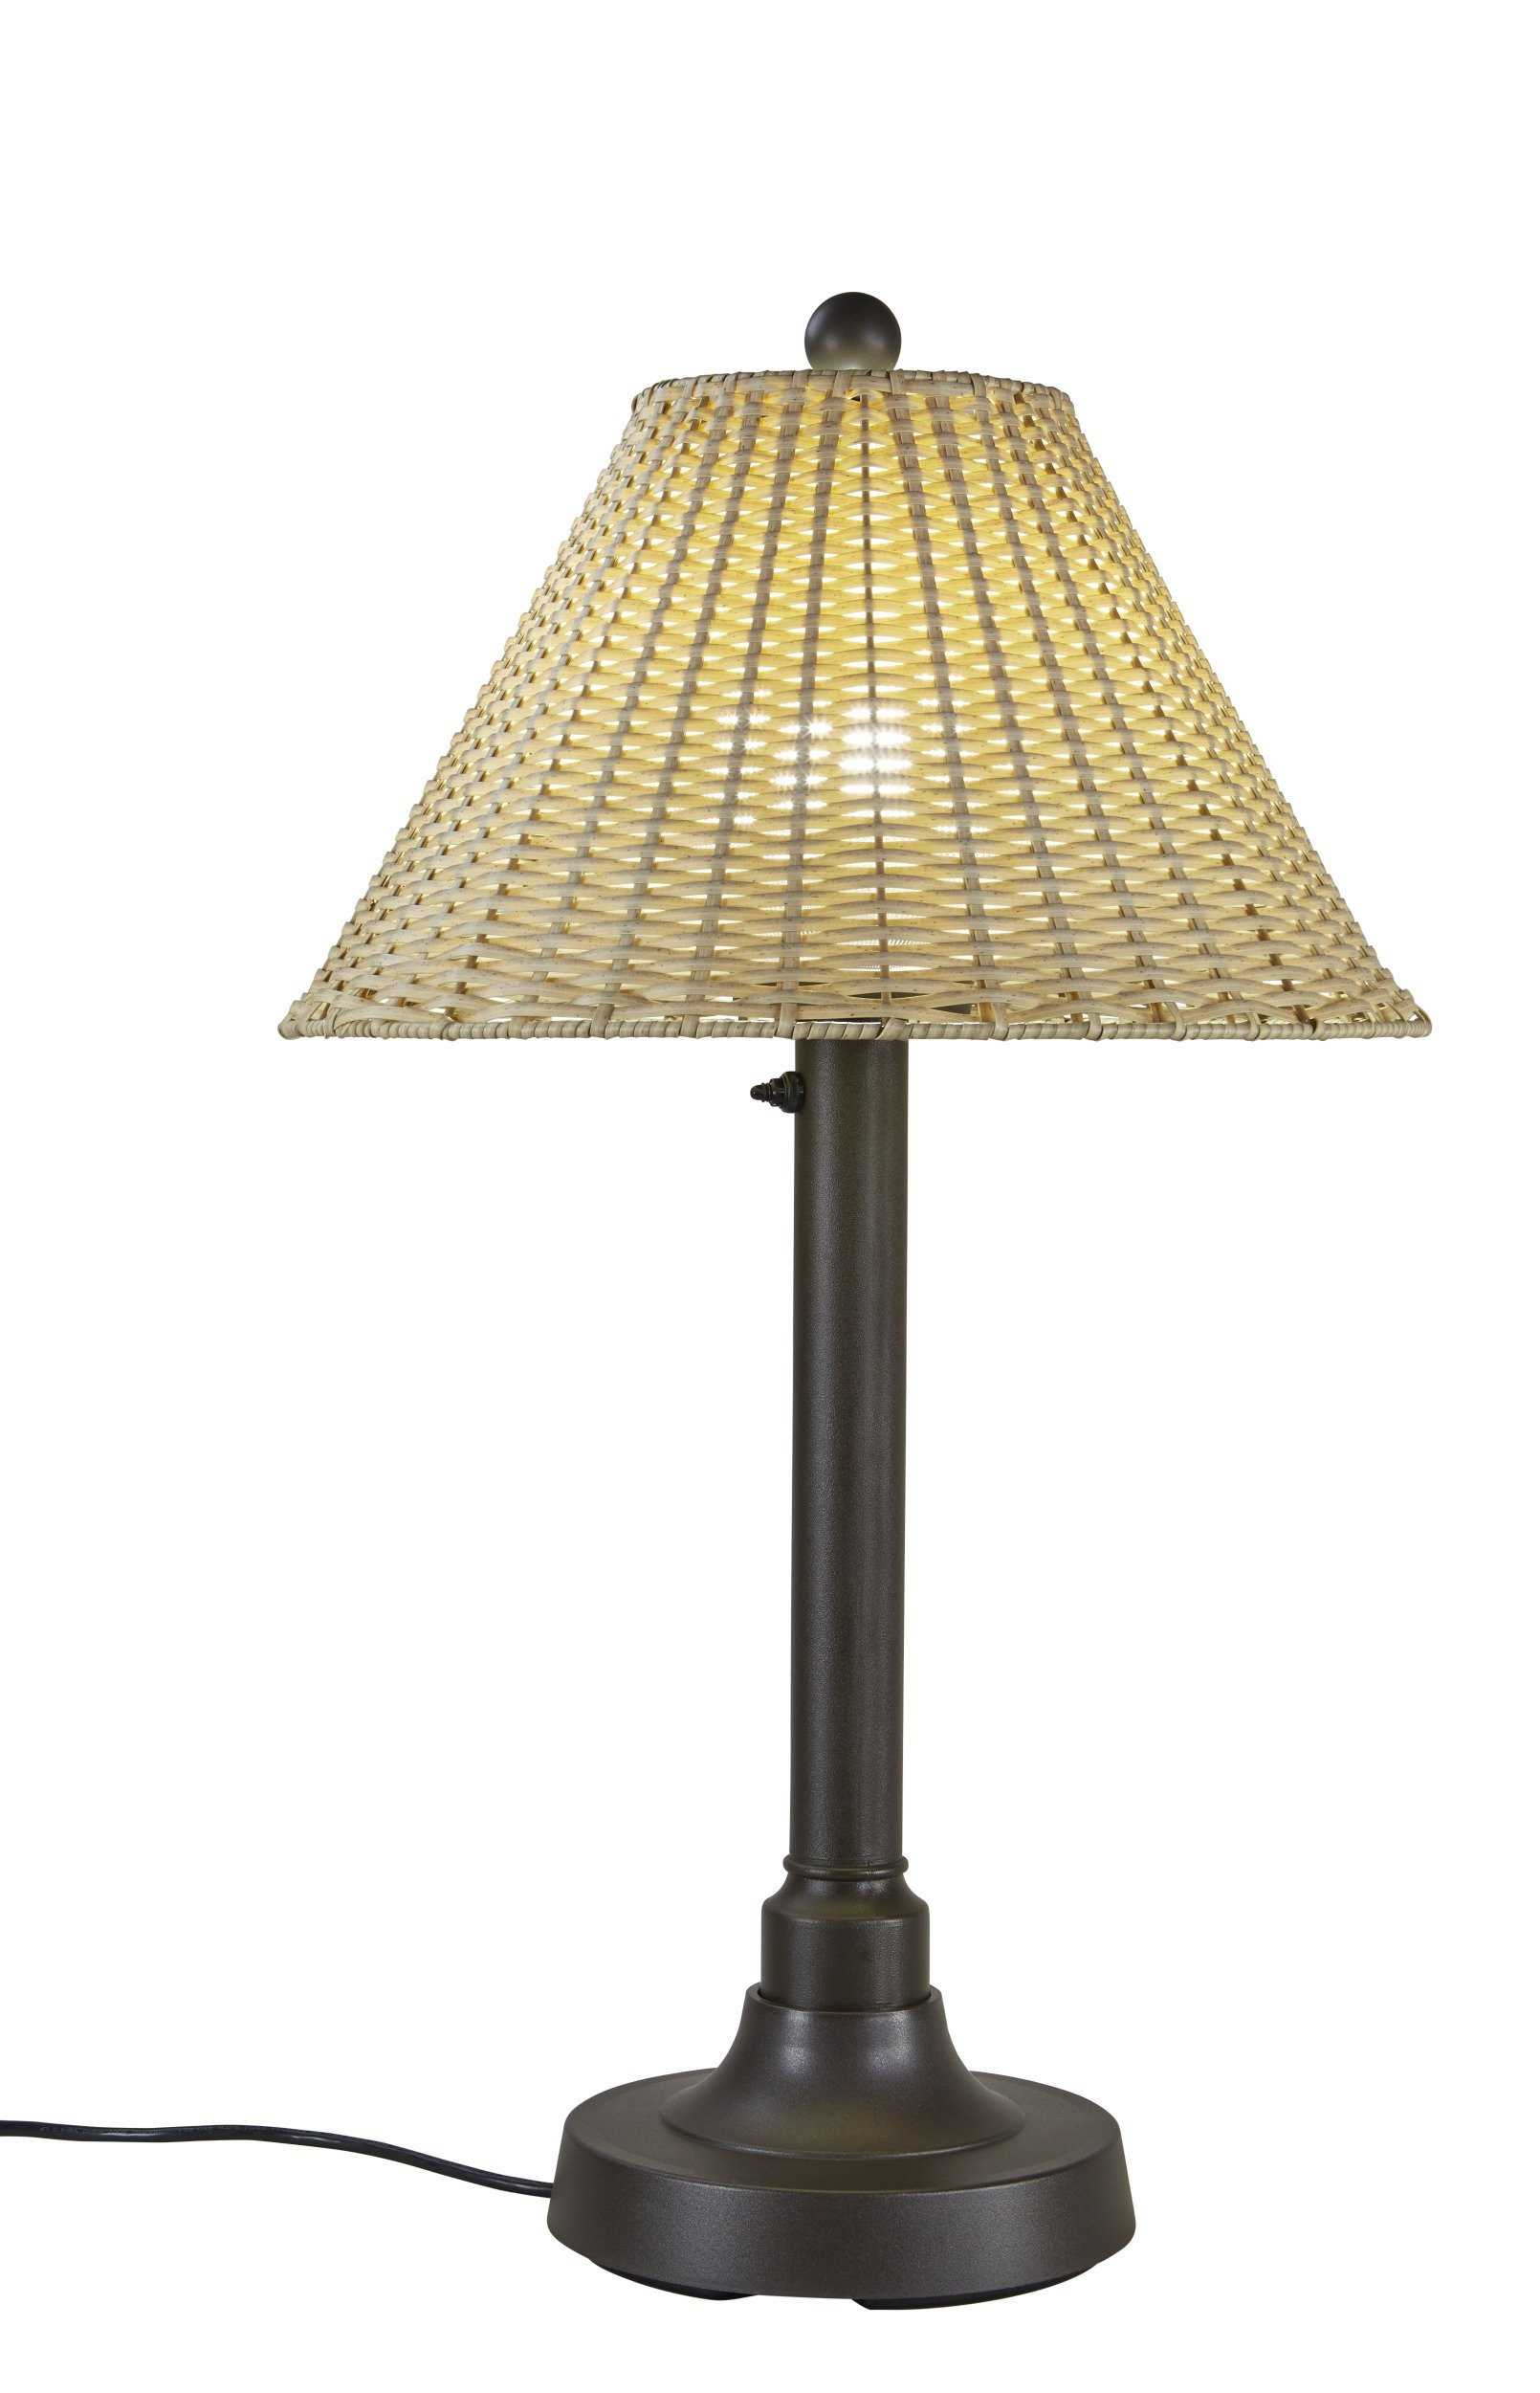 Patio Living Concepts 19217 Tahiti Outdoor Table Lamp with 2'' Tubular Body, 34''